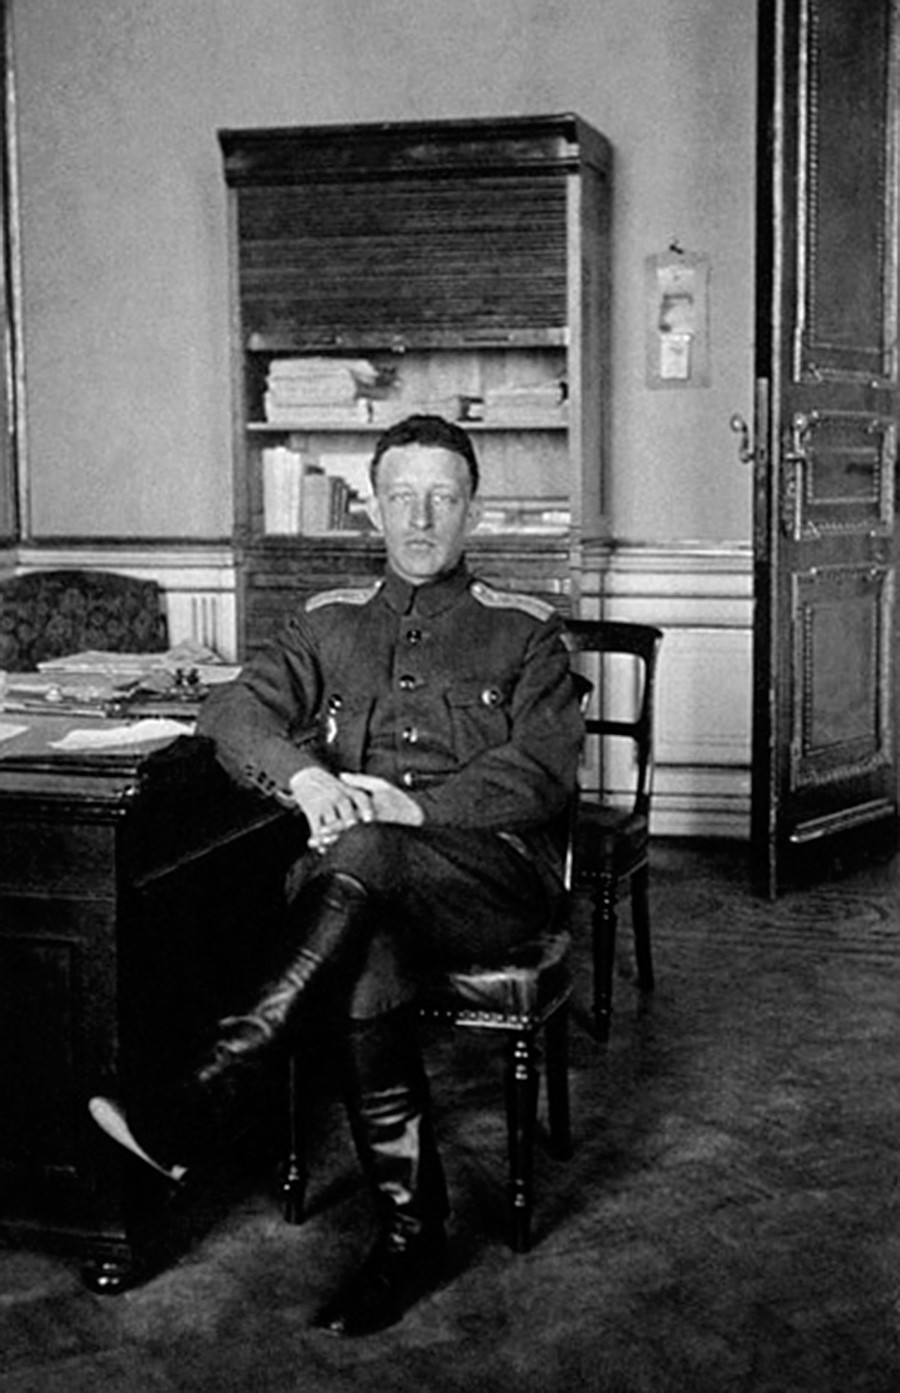 Alexander Blok during his service in the Extraordinary Investigation Commission of Provisional government